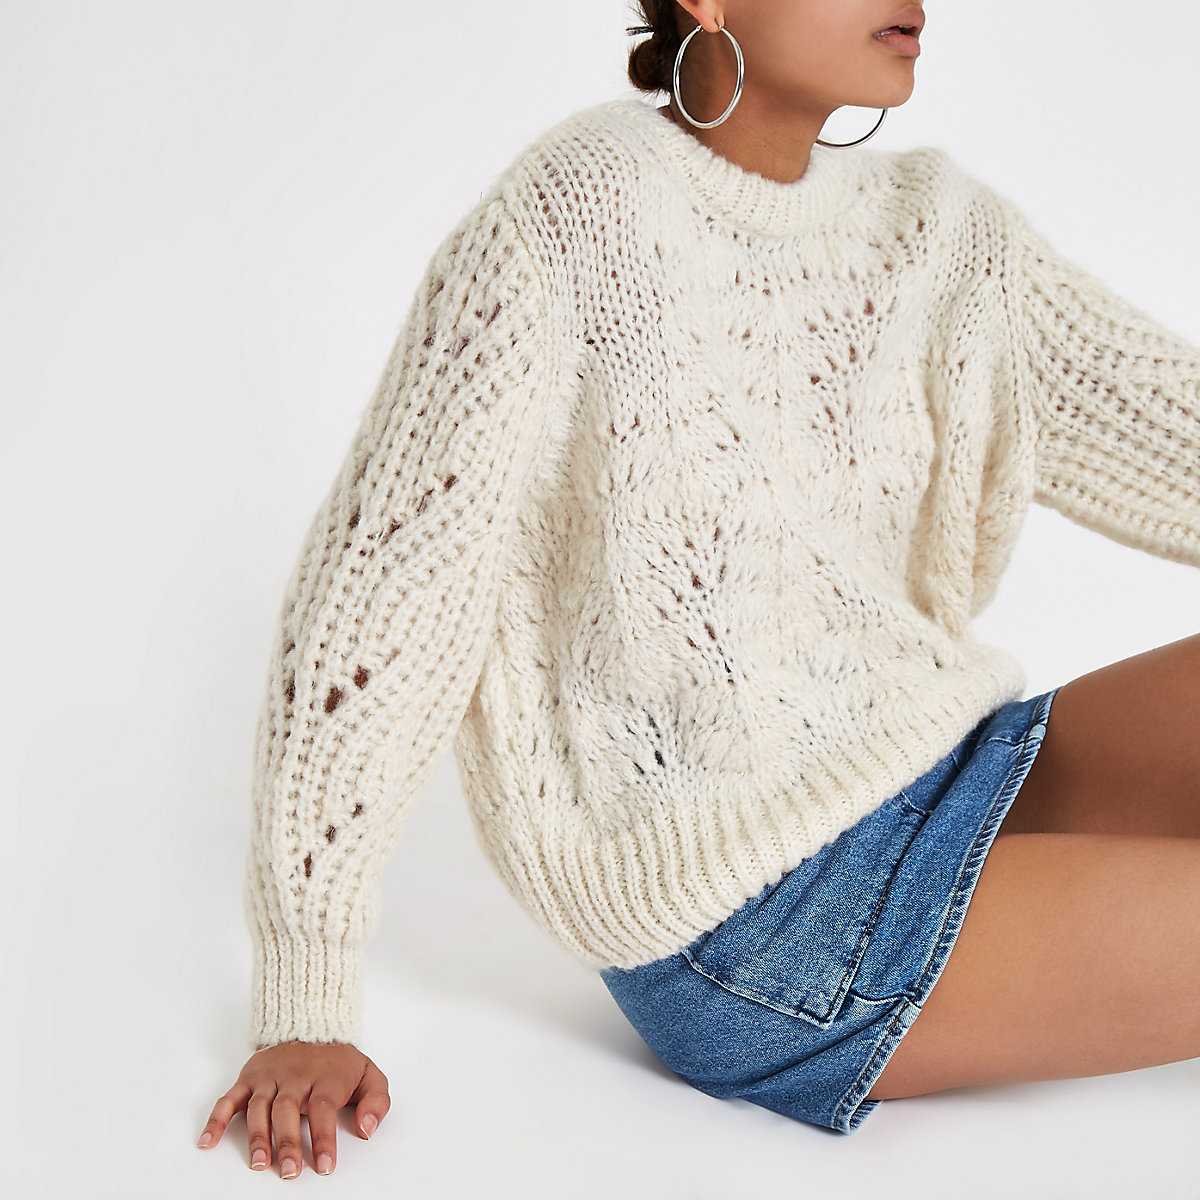 06584c177c Cream chunky knit sweater - Sweaters - Knitwear - women